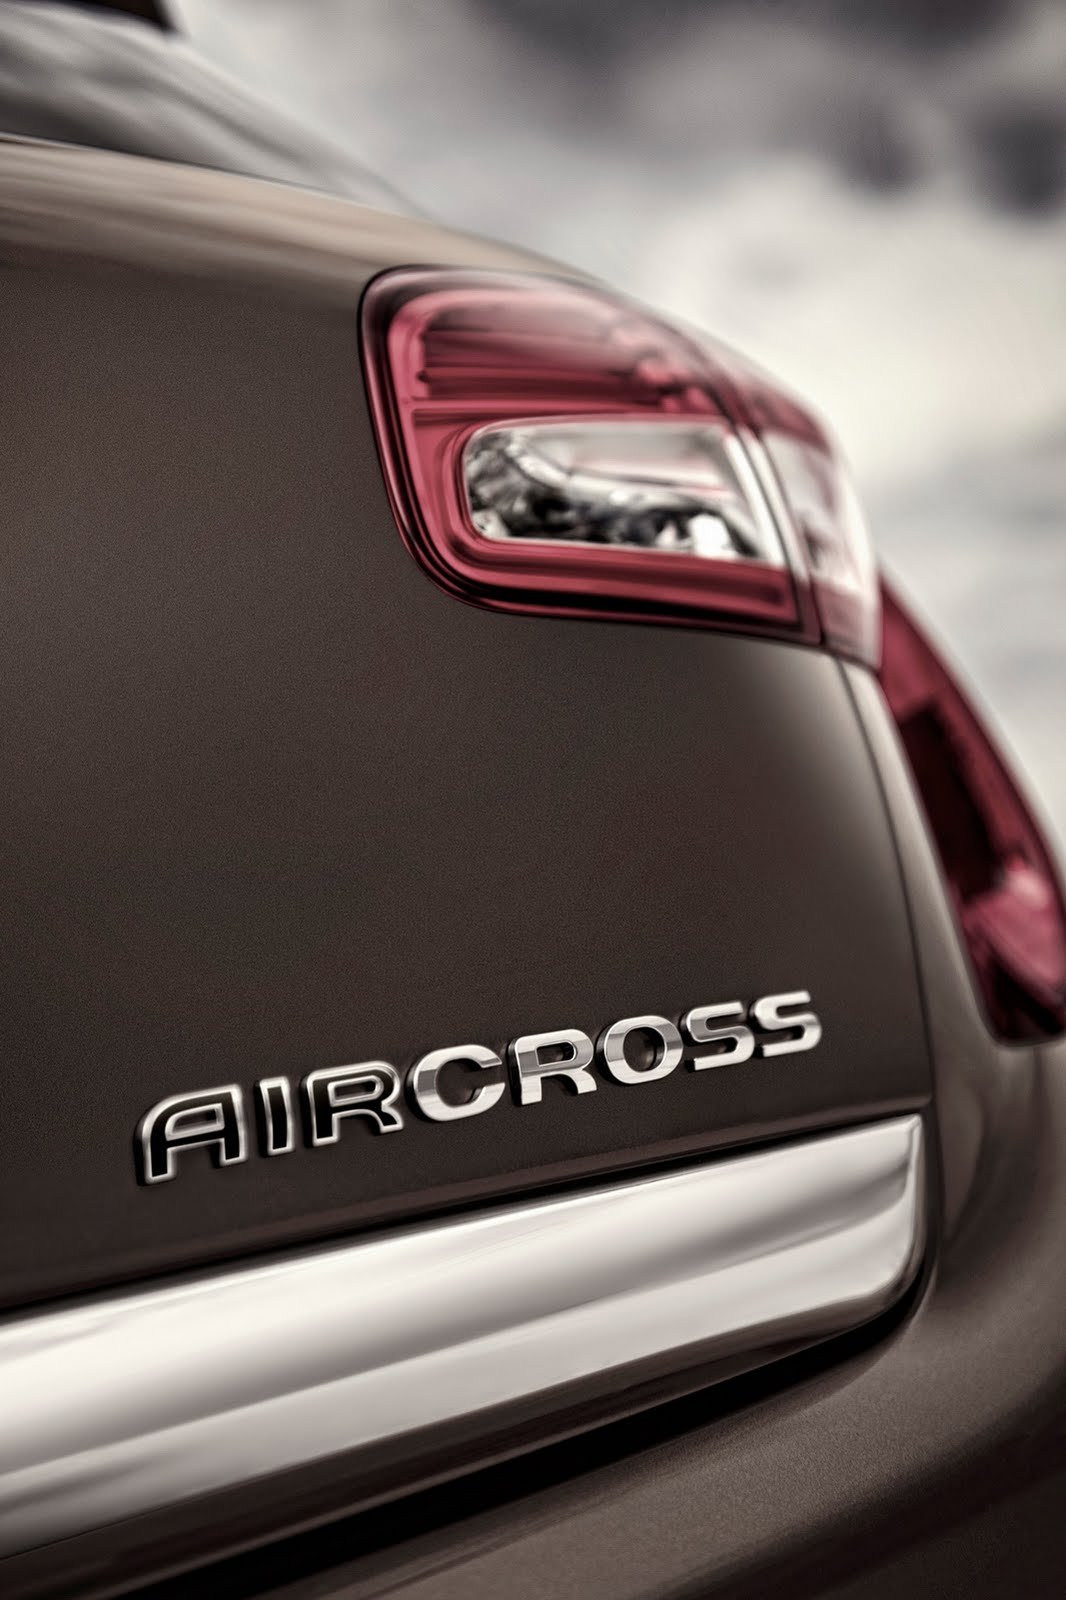 2012 Citroen C4 Aircross 4 New 2012 Citroen C4 AIRCROSS: PSAs Takes on the Mitsubishi ASX with its new version